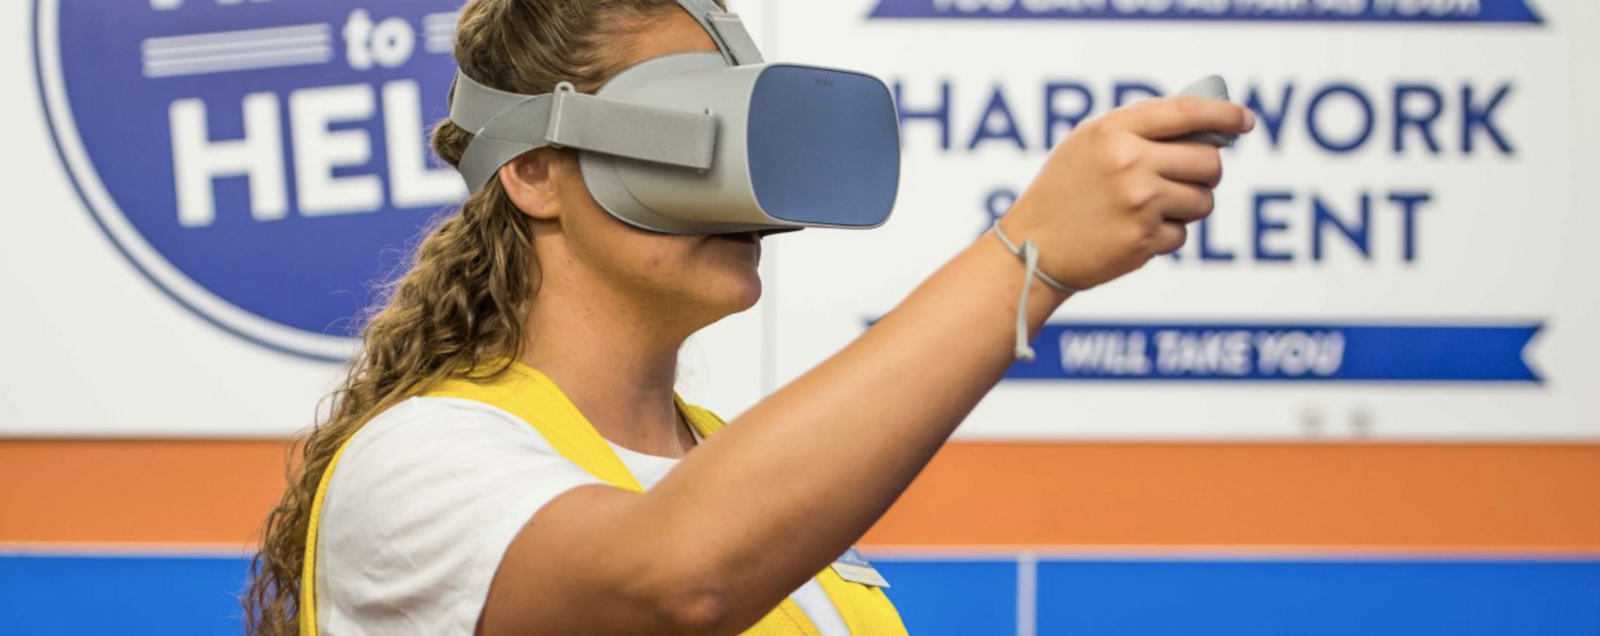 Walmart Shows Why Training Is the Future Virtual Reality